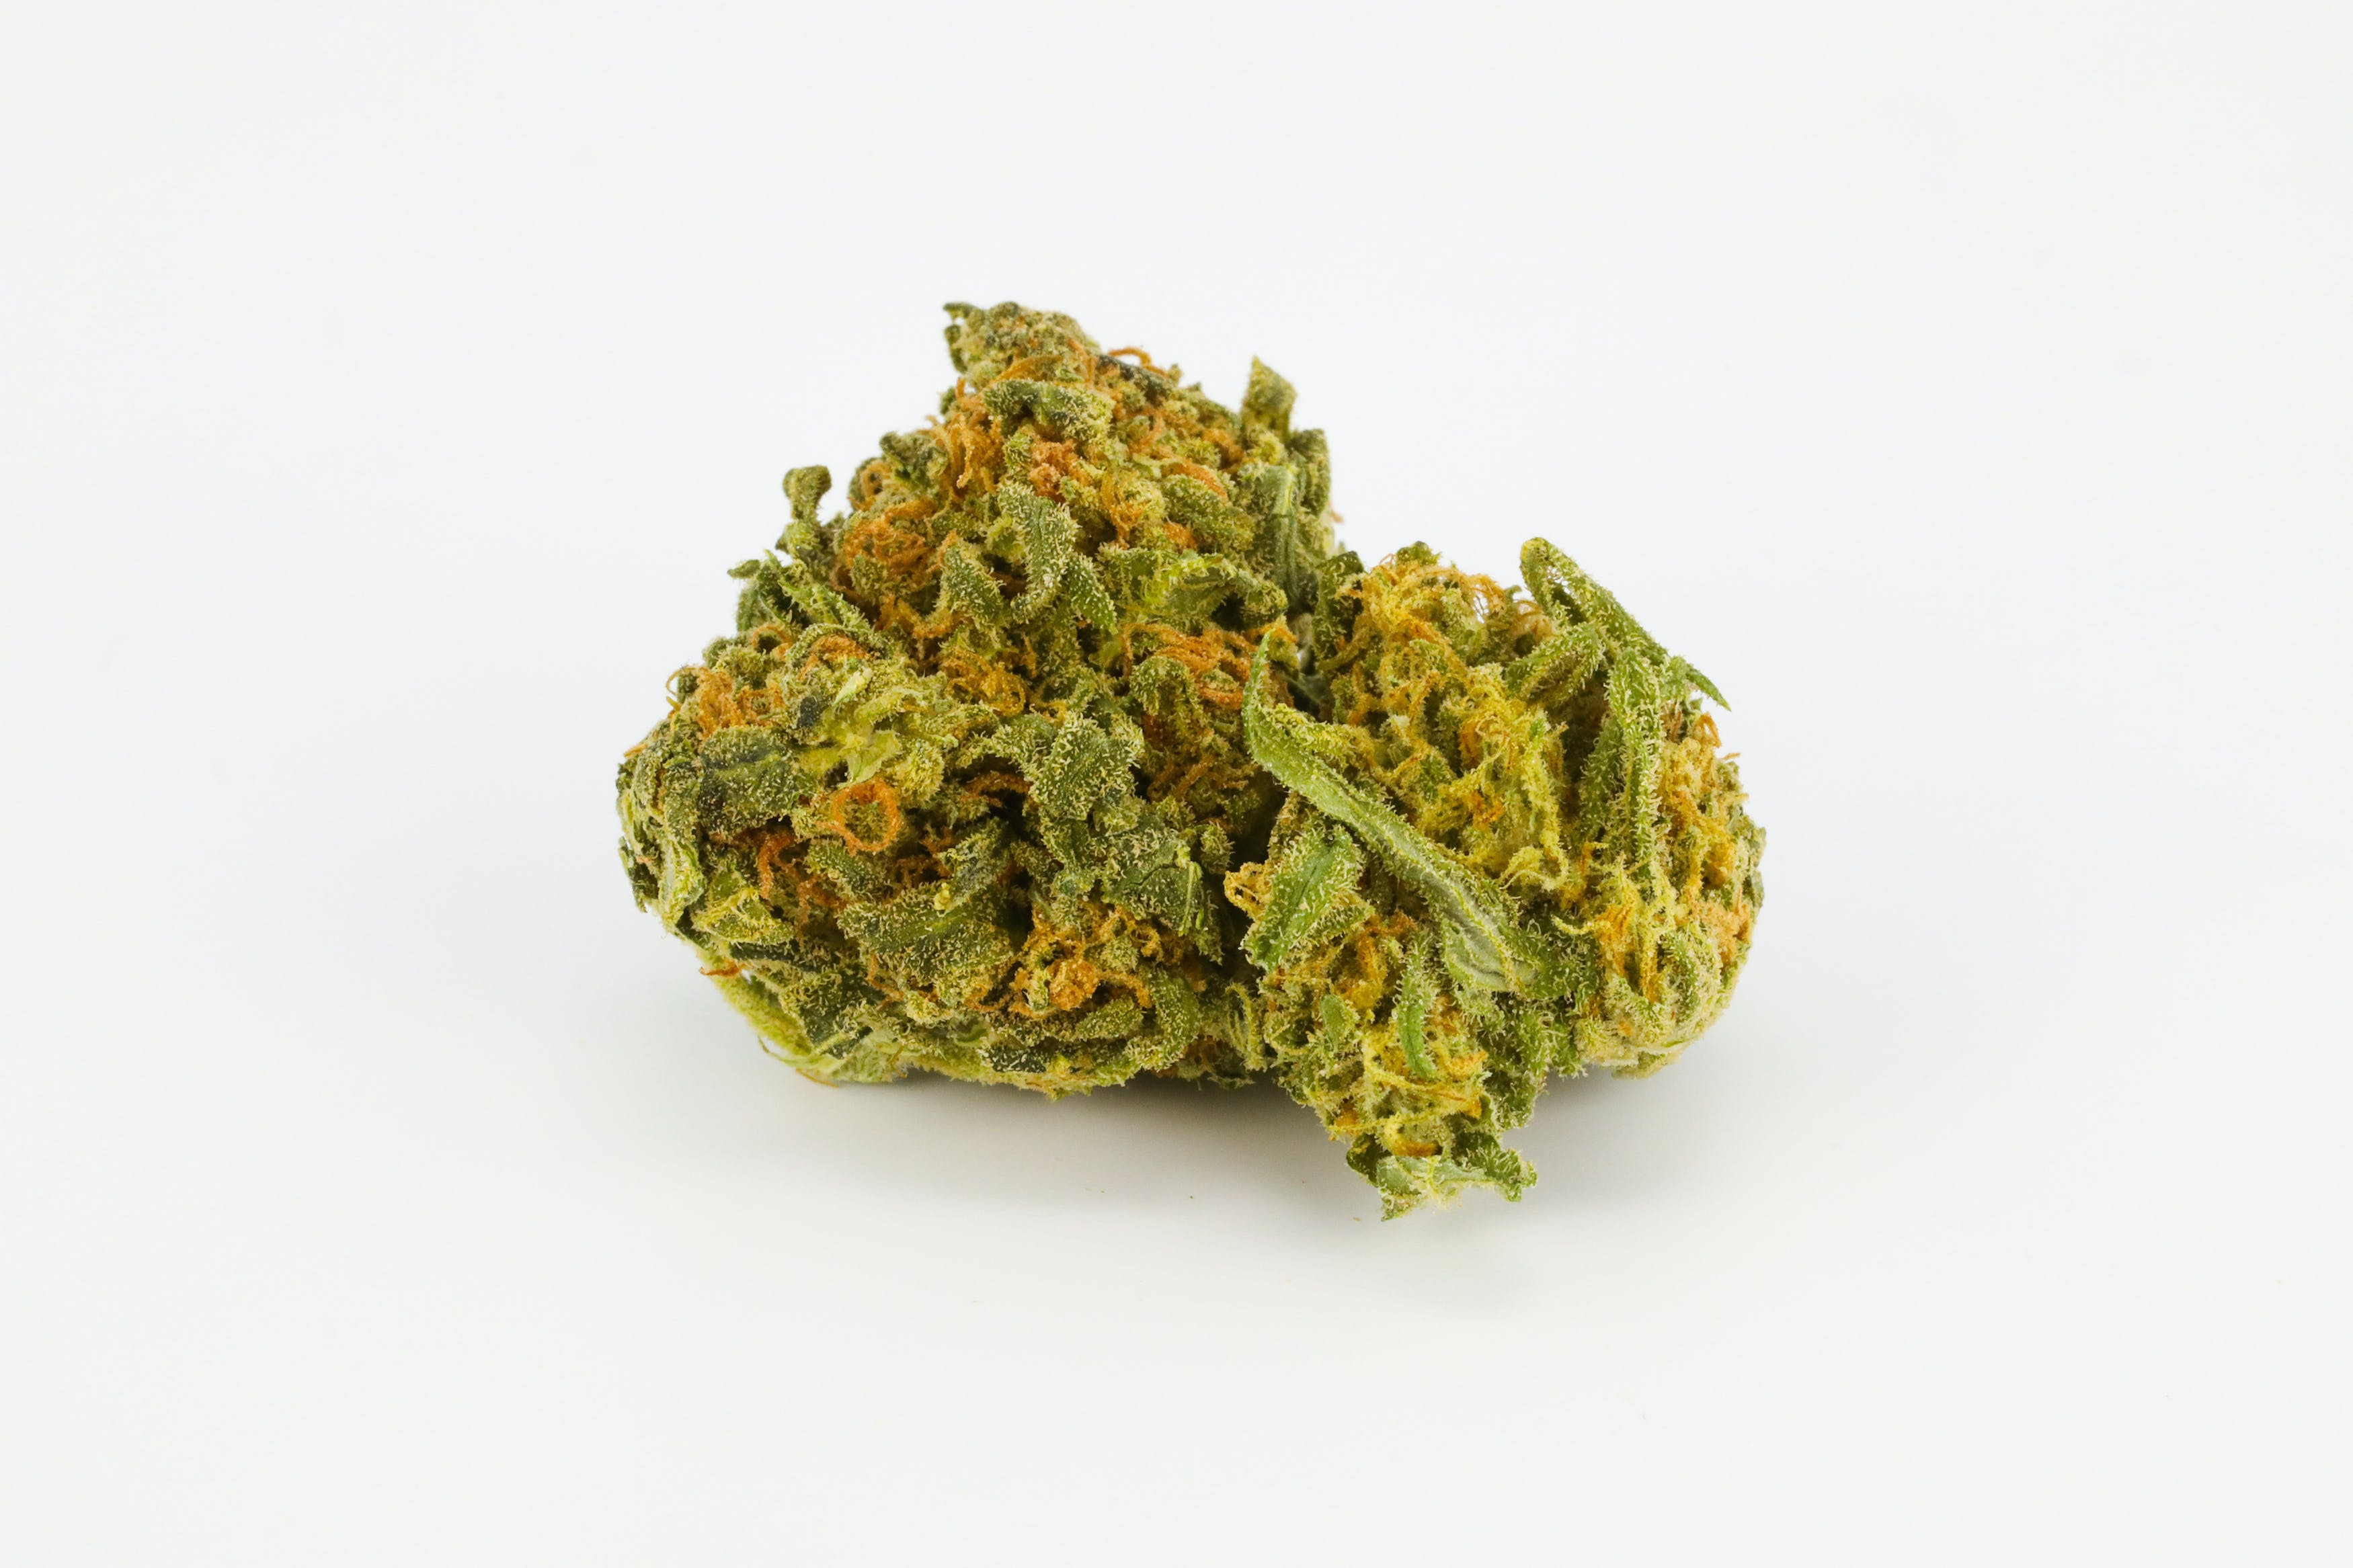 Phantom Cookies Weed; Phantom Cookies Cannabis Strain; Phantom Cookies Hybrid Marijuana Strain